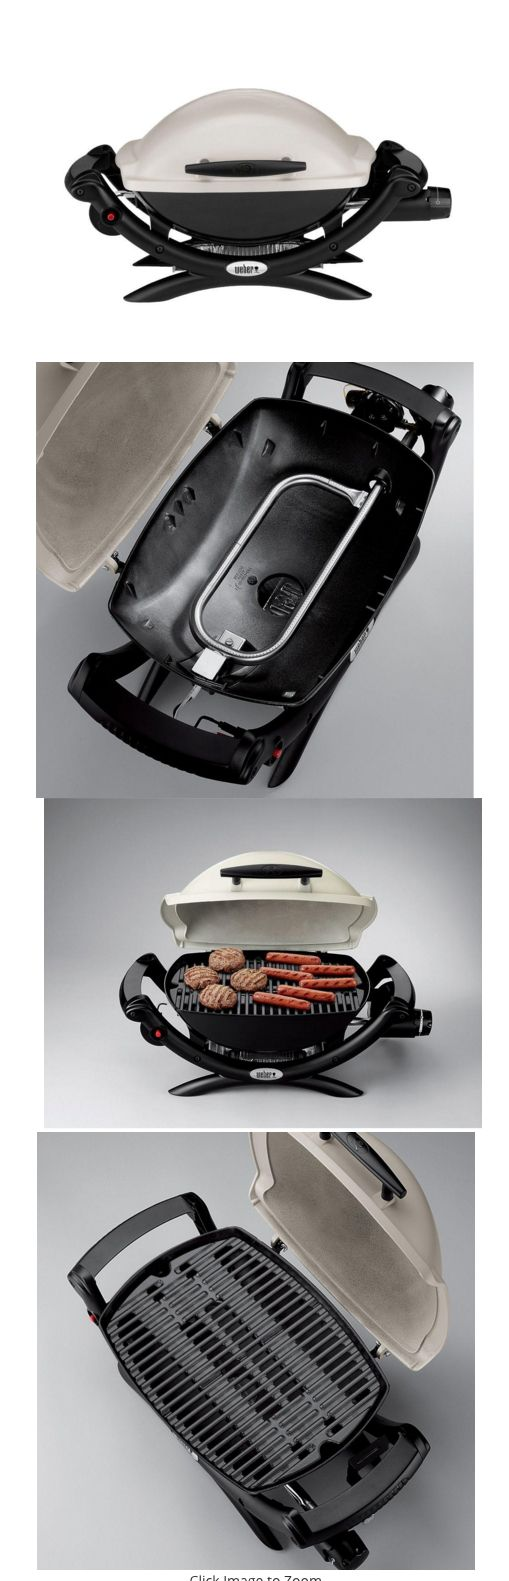 Camping BBQs and Grills 181388: Camping Gas Grill Portable Weber Propane Q 1000 Burner Stove Cast Iron 8500 Btu -> BUY IT NOW ONLY: $236.66 on eBay!